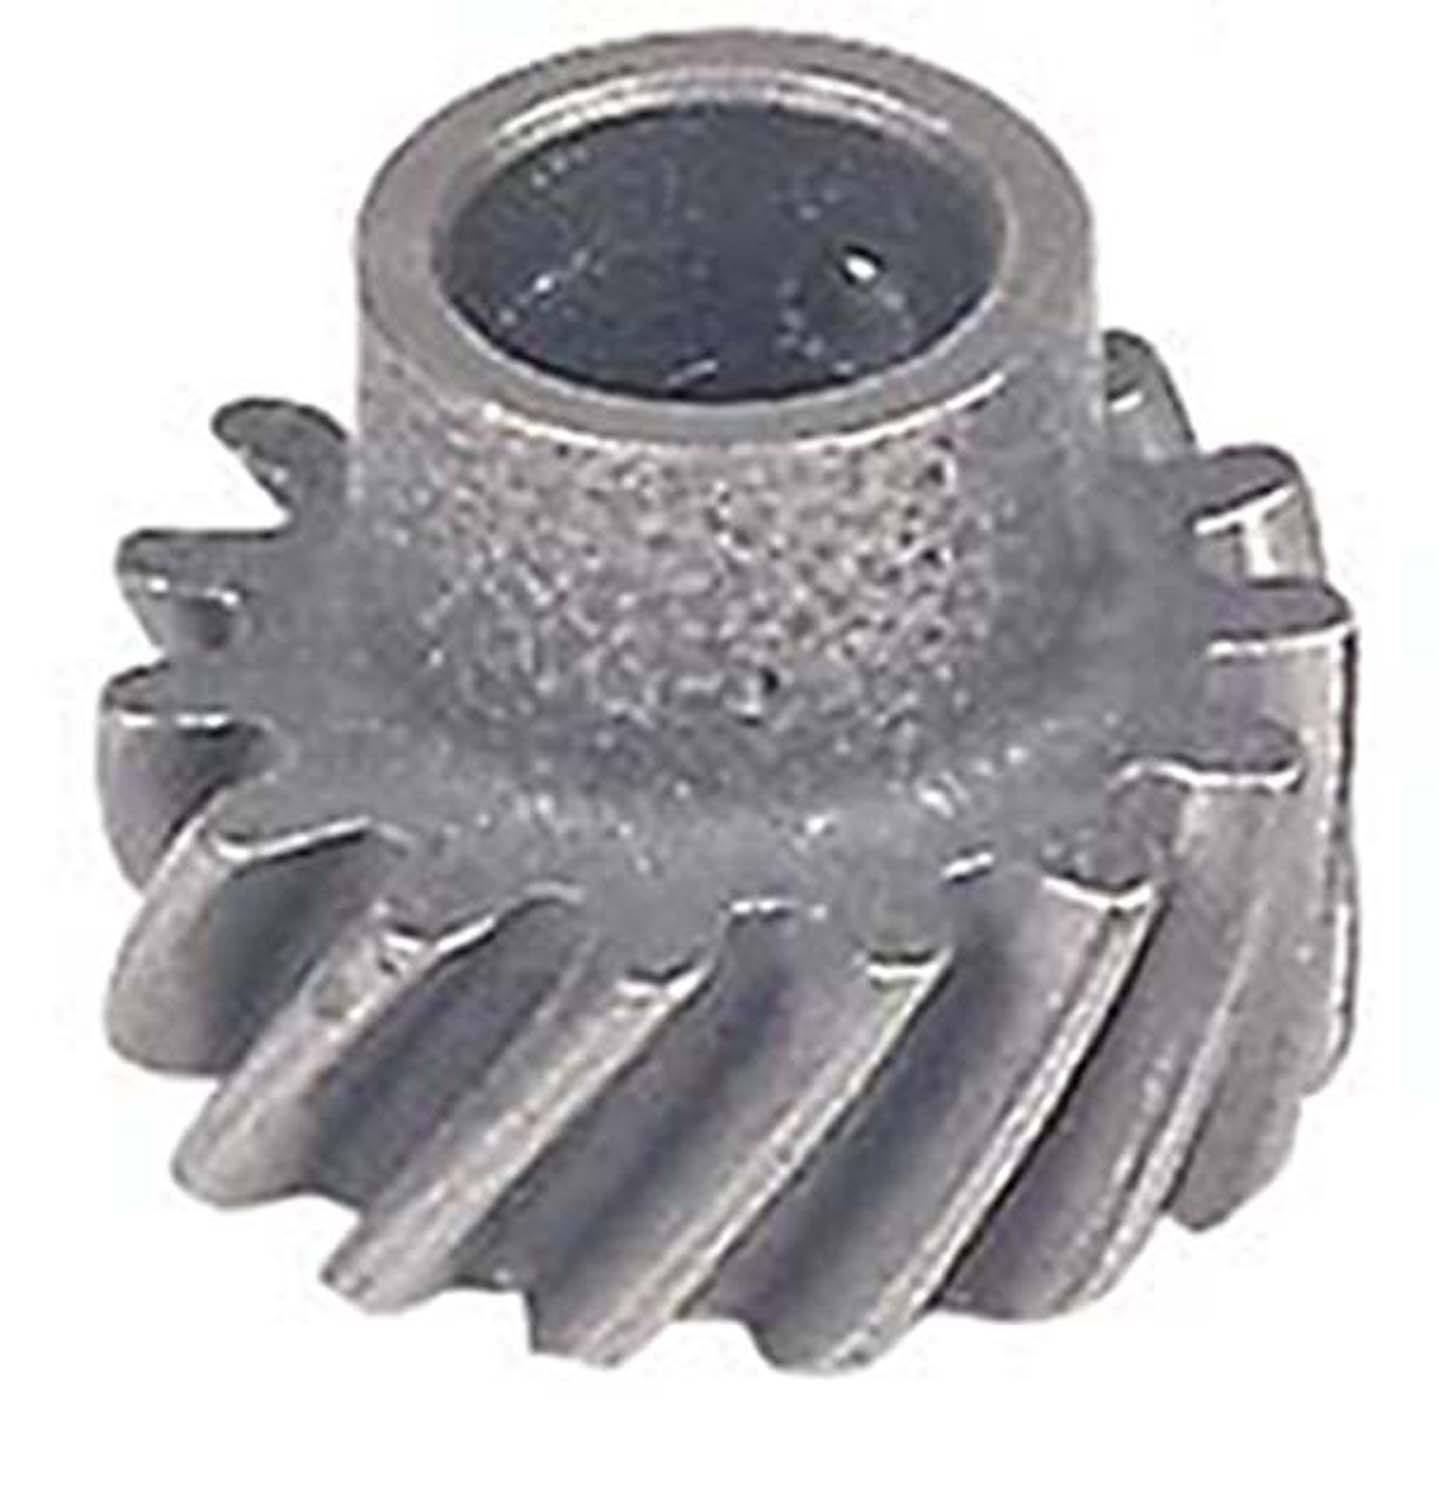 Msd Ignition Distributor Gear Steel Ford 351C-460